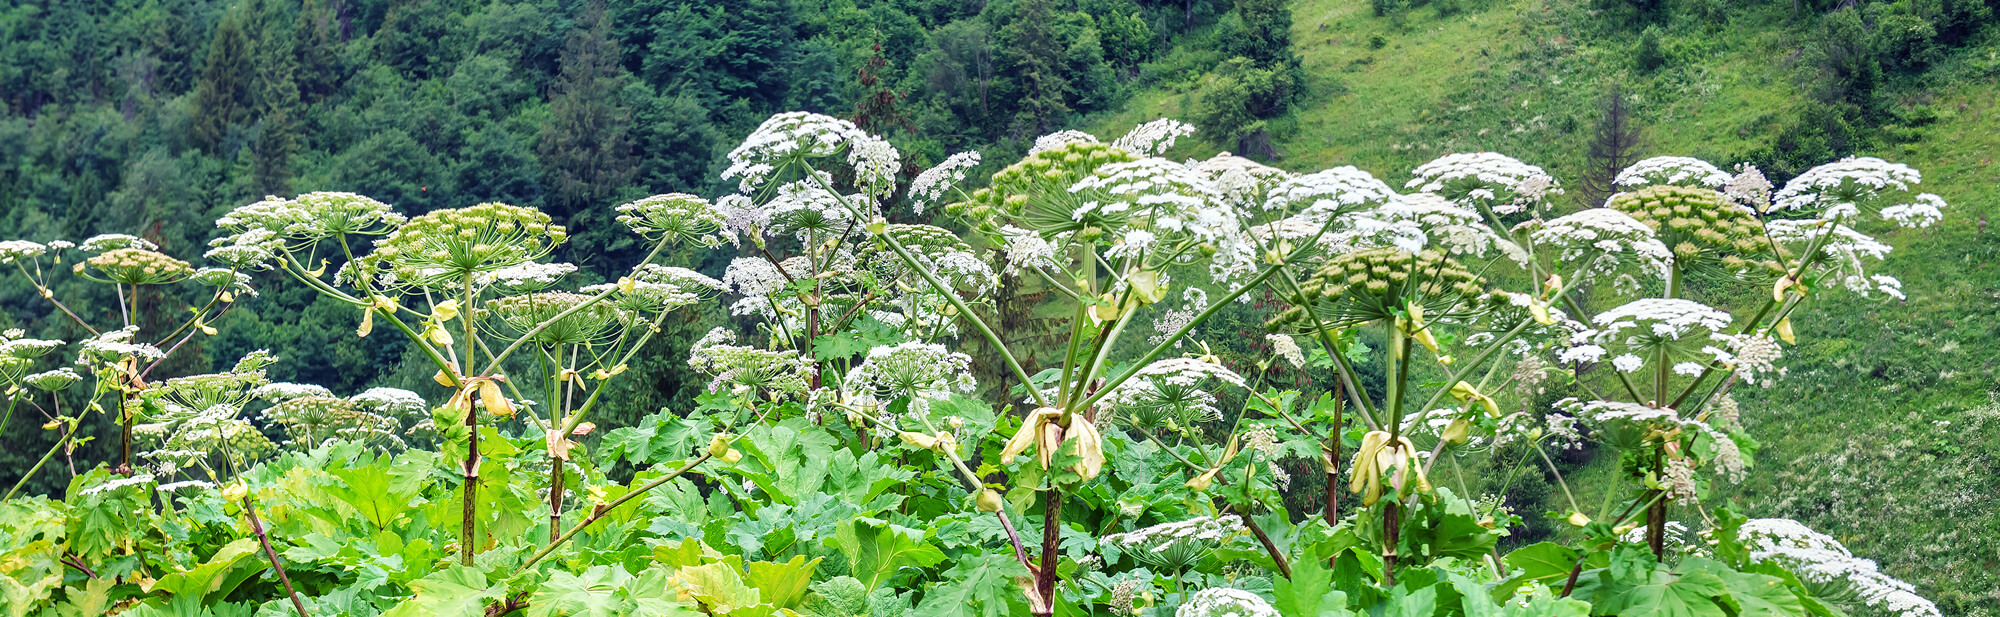 giant hogweed removal